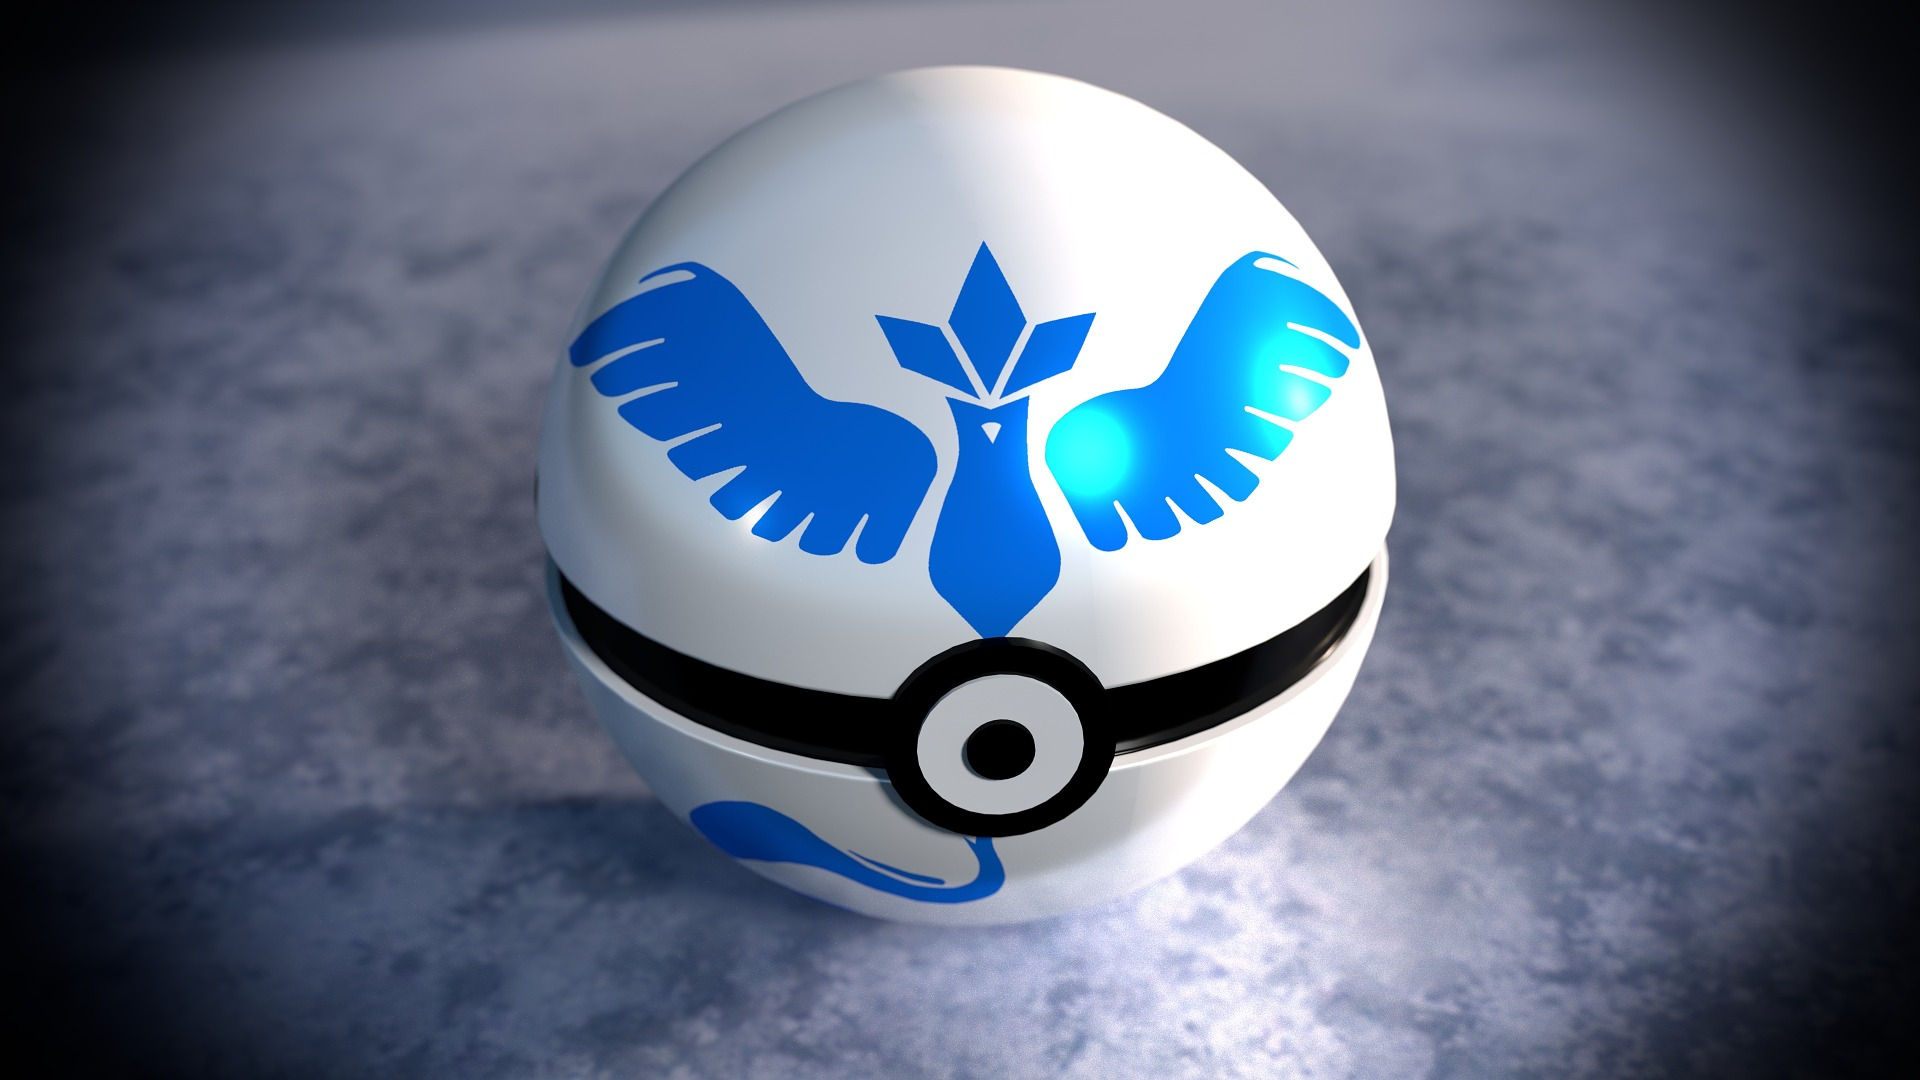 pokeball, Pokemon, παιχνίδι, Pokemon πάει, manga - Wallpapers HD - Professor-falken.com